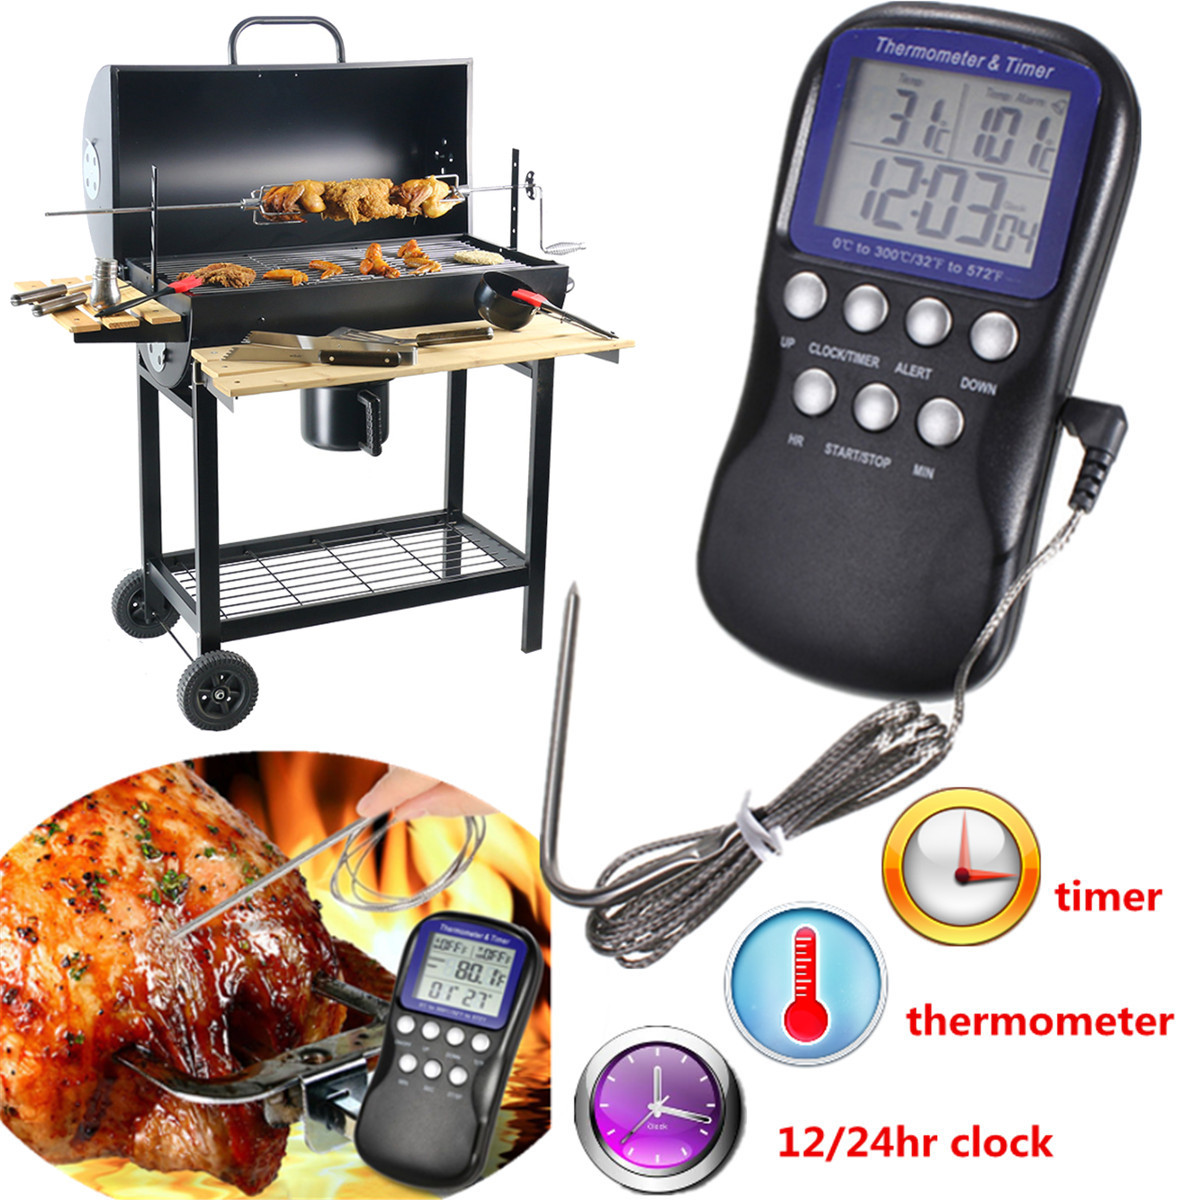 Digital Kitchen Thermometer Timer Oven BBQ Grill Home Cooking Food Meat Clock Alarm Probe 300°C US